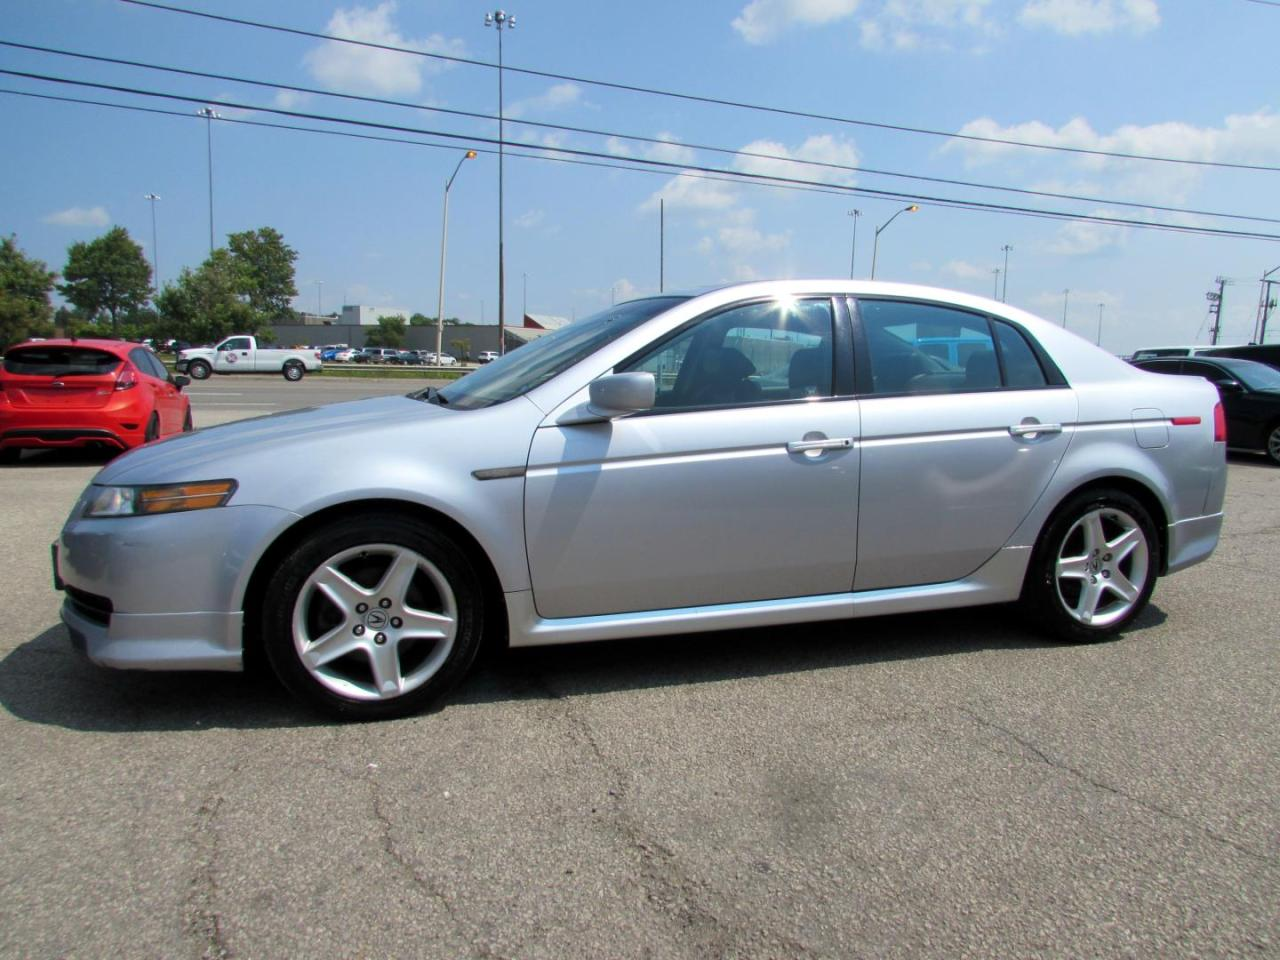 Used Acura TL L AUTOMATIC LEATHER NAVIGATION SUNROOF - 04 acura tl for sale